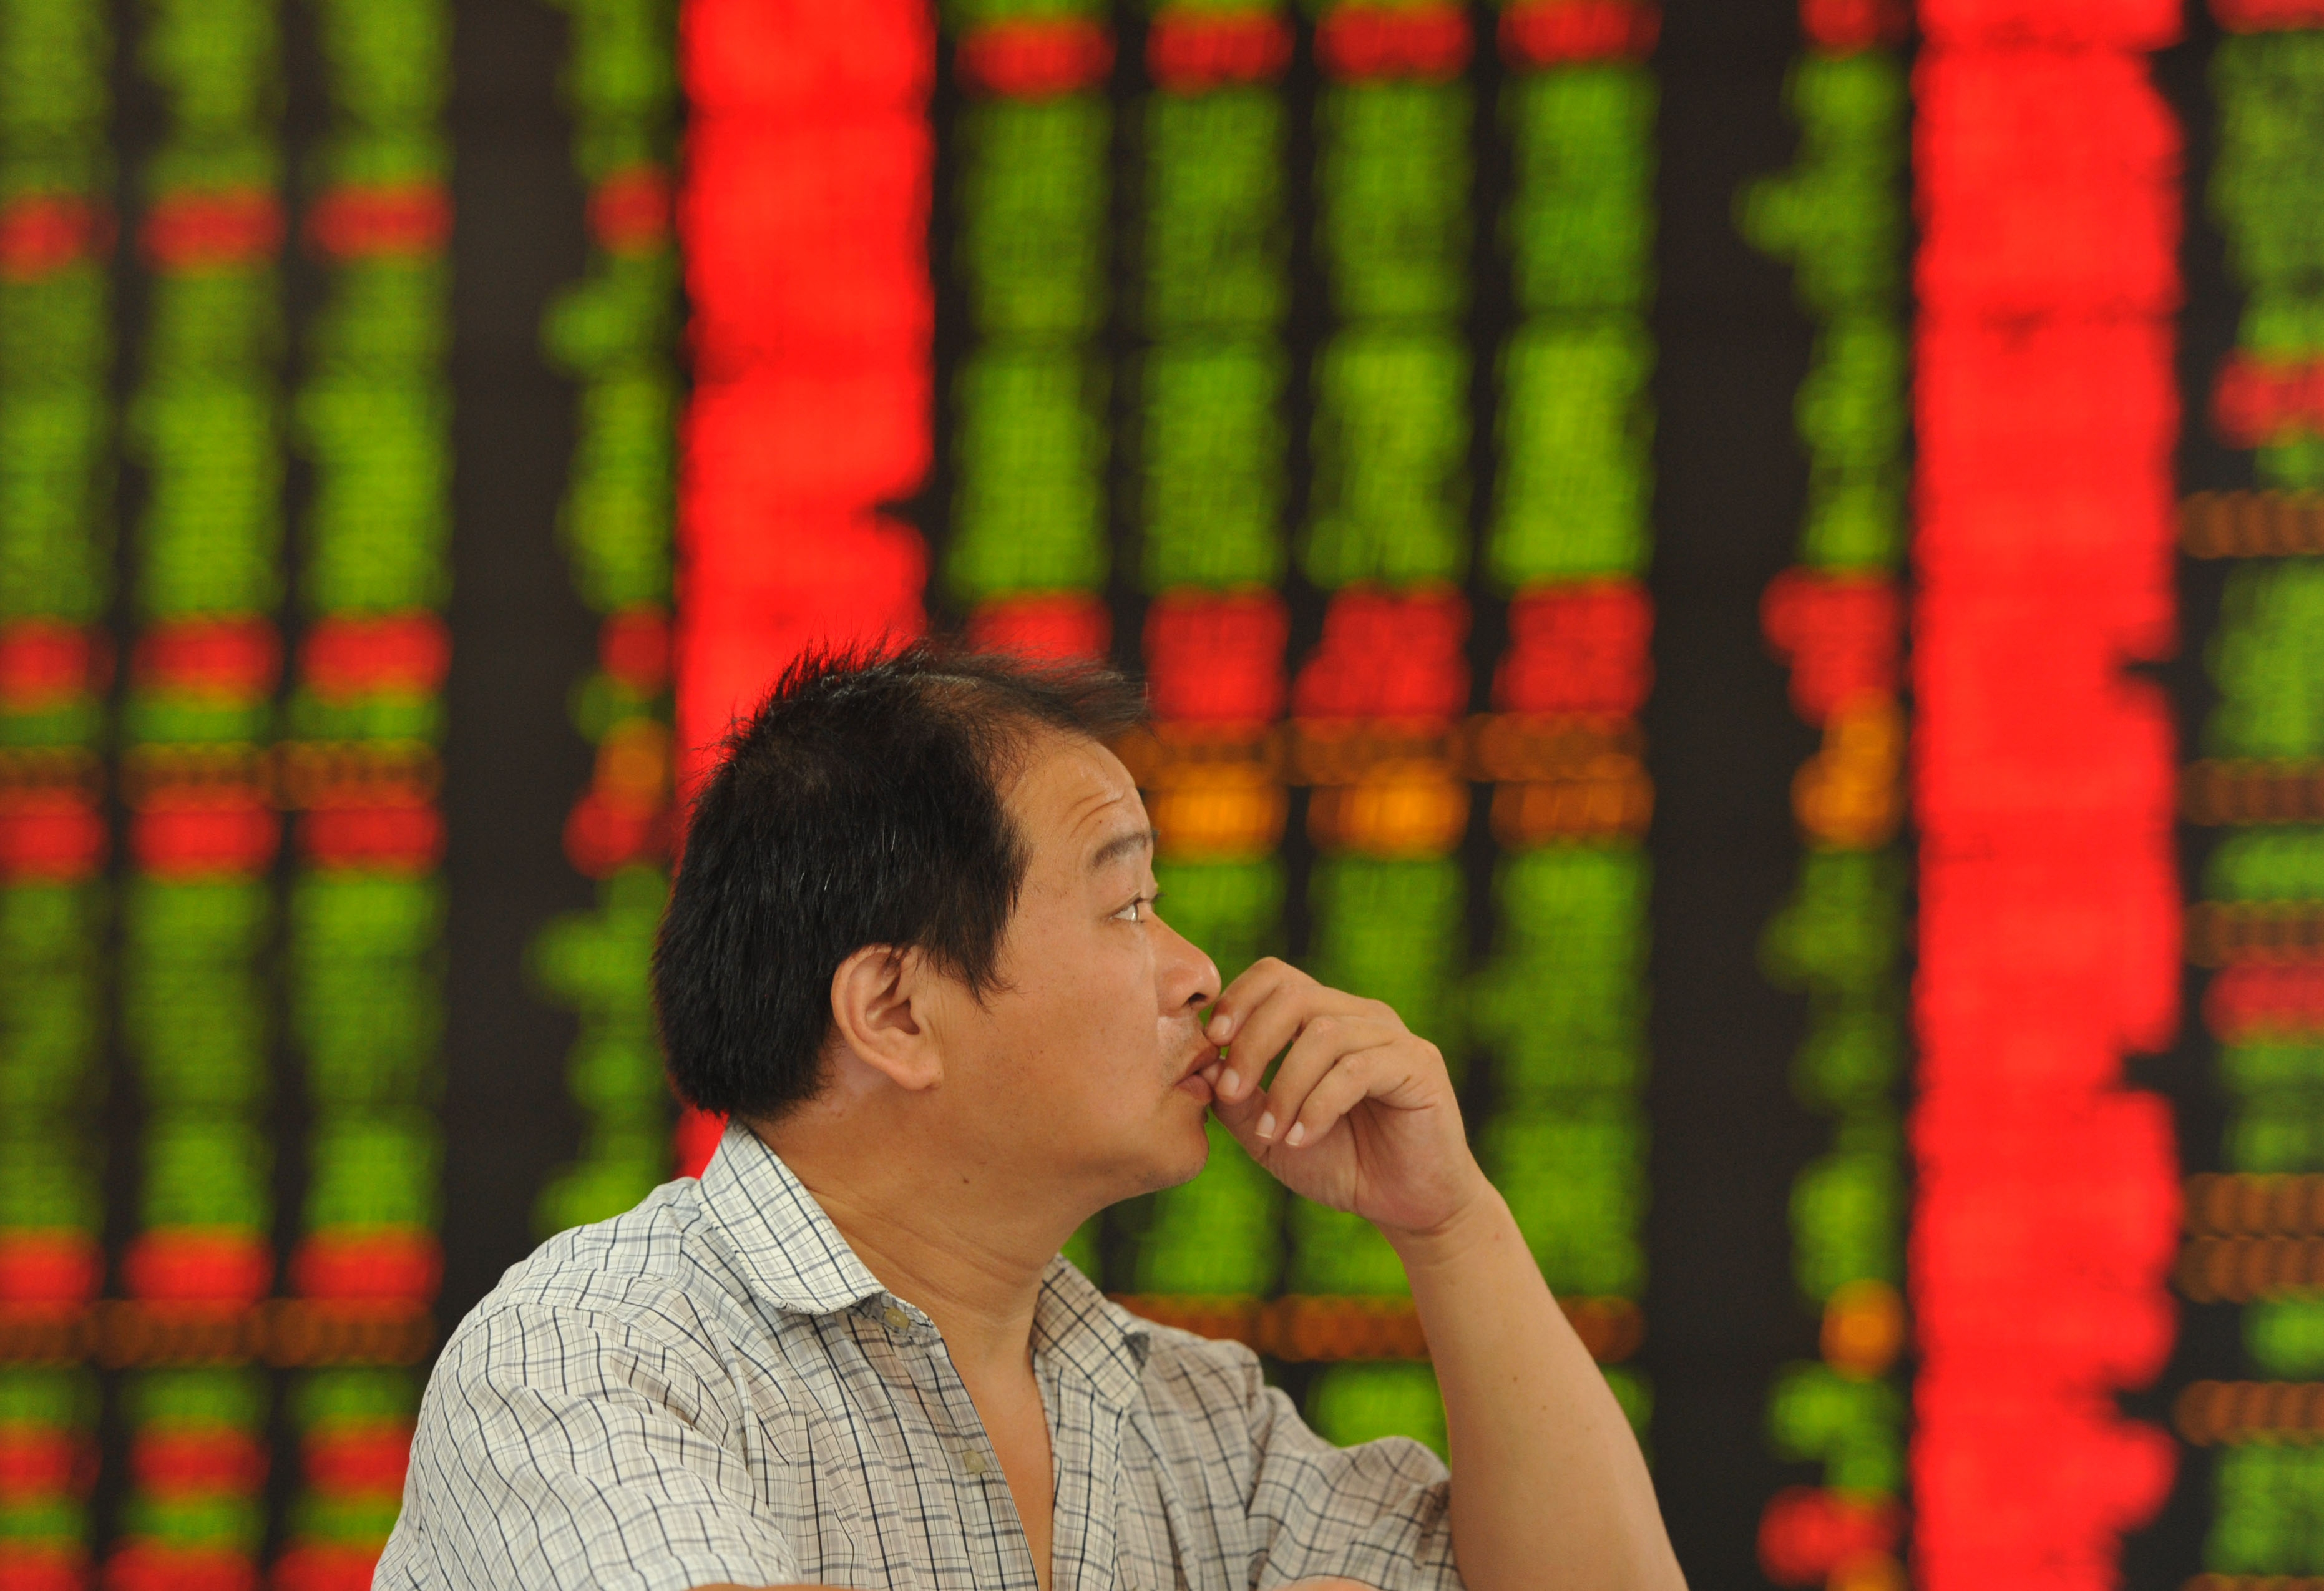 A concerned Chinese investor looks at prices of shares (red for price rising and green for price falling) at a Chinese stock brokerage house on August 5, 2015.